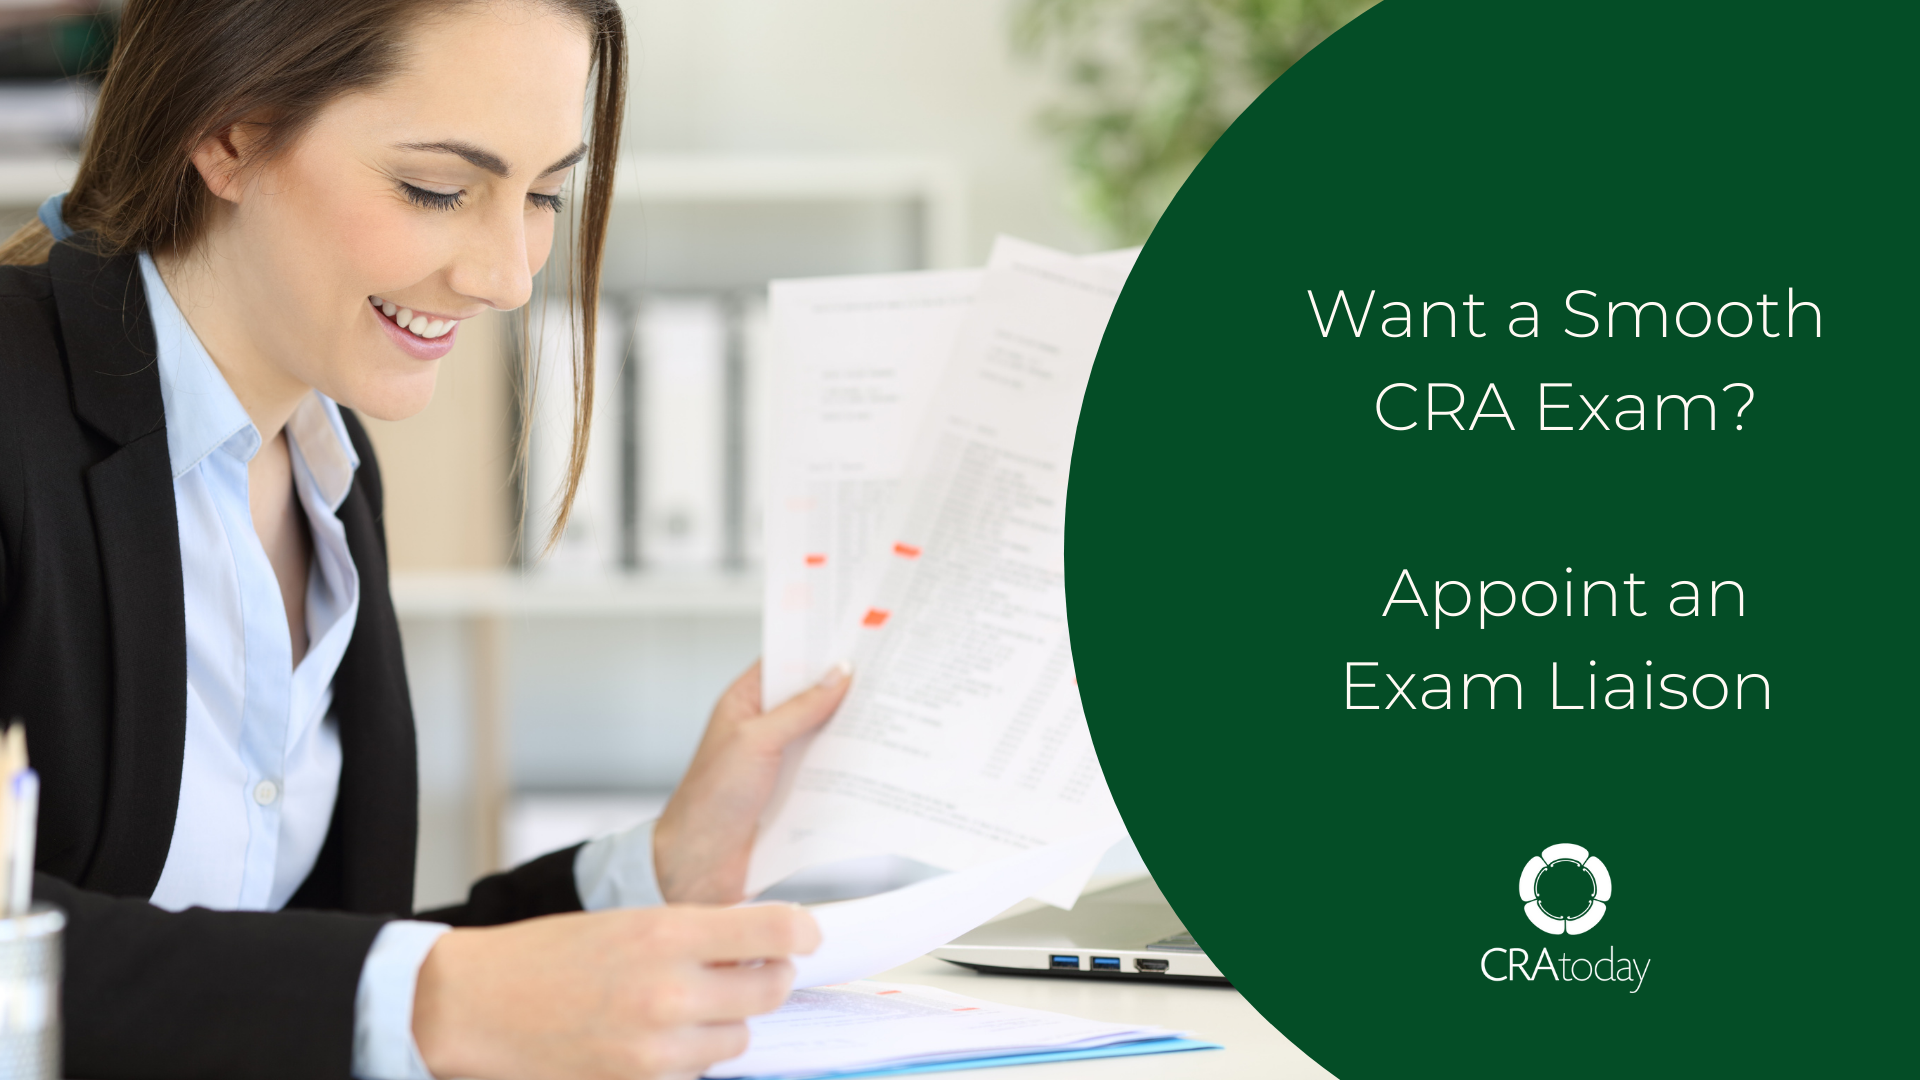 Want a Smooth CRA Exam? Appoint an Exam Liaison